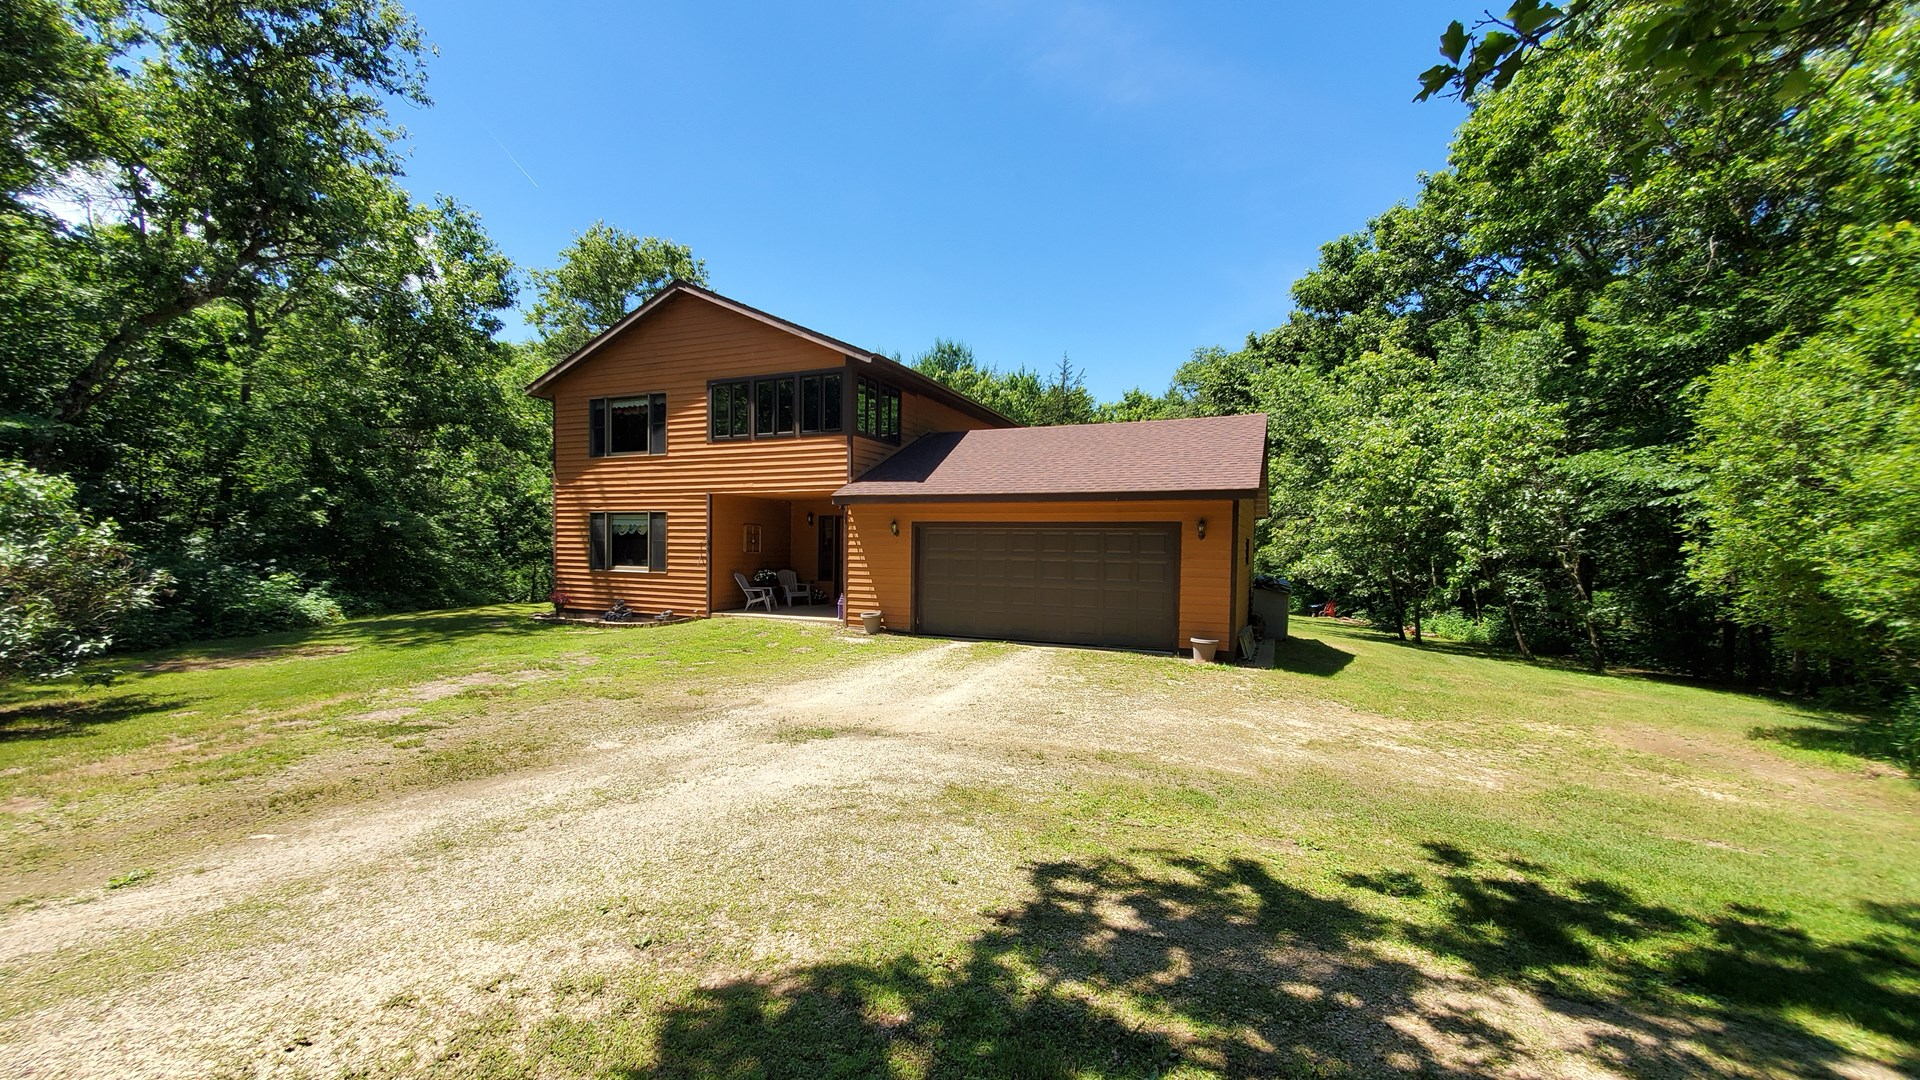 Country home secluded on a dead end road sitting on 60 acres